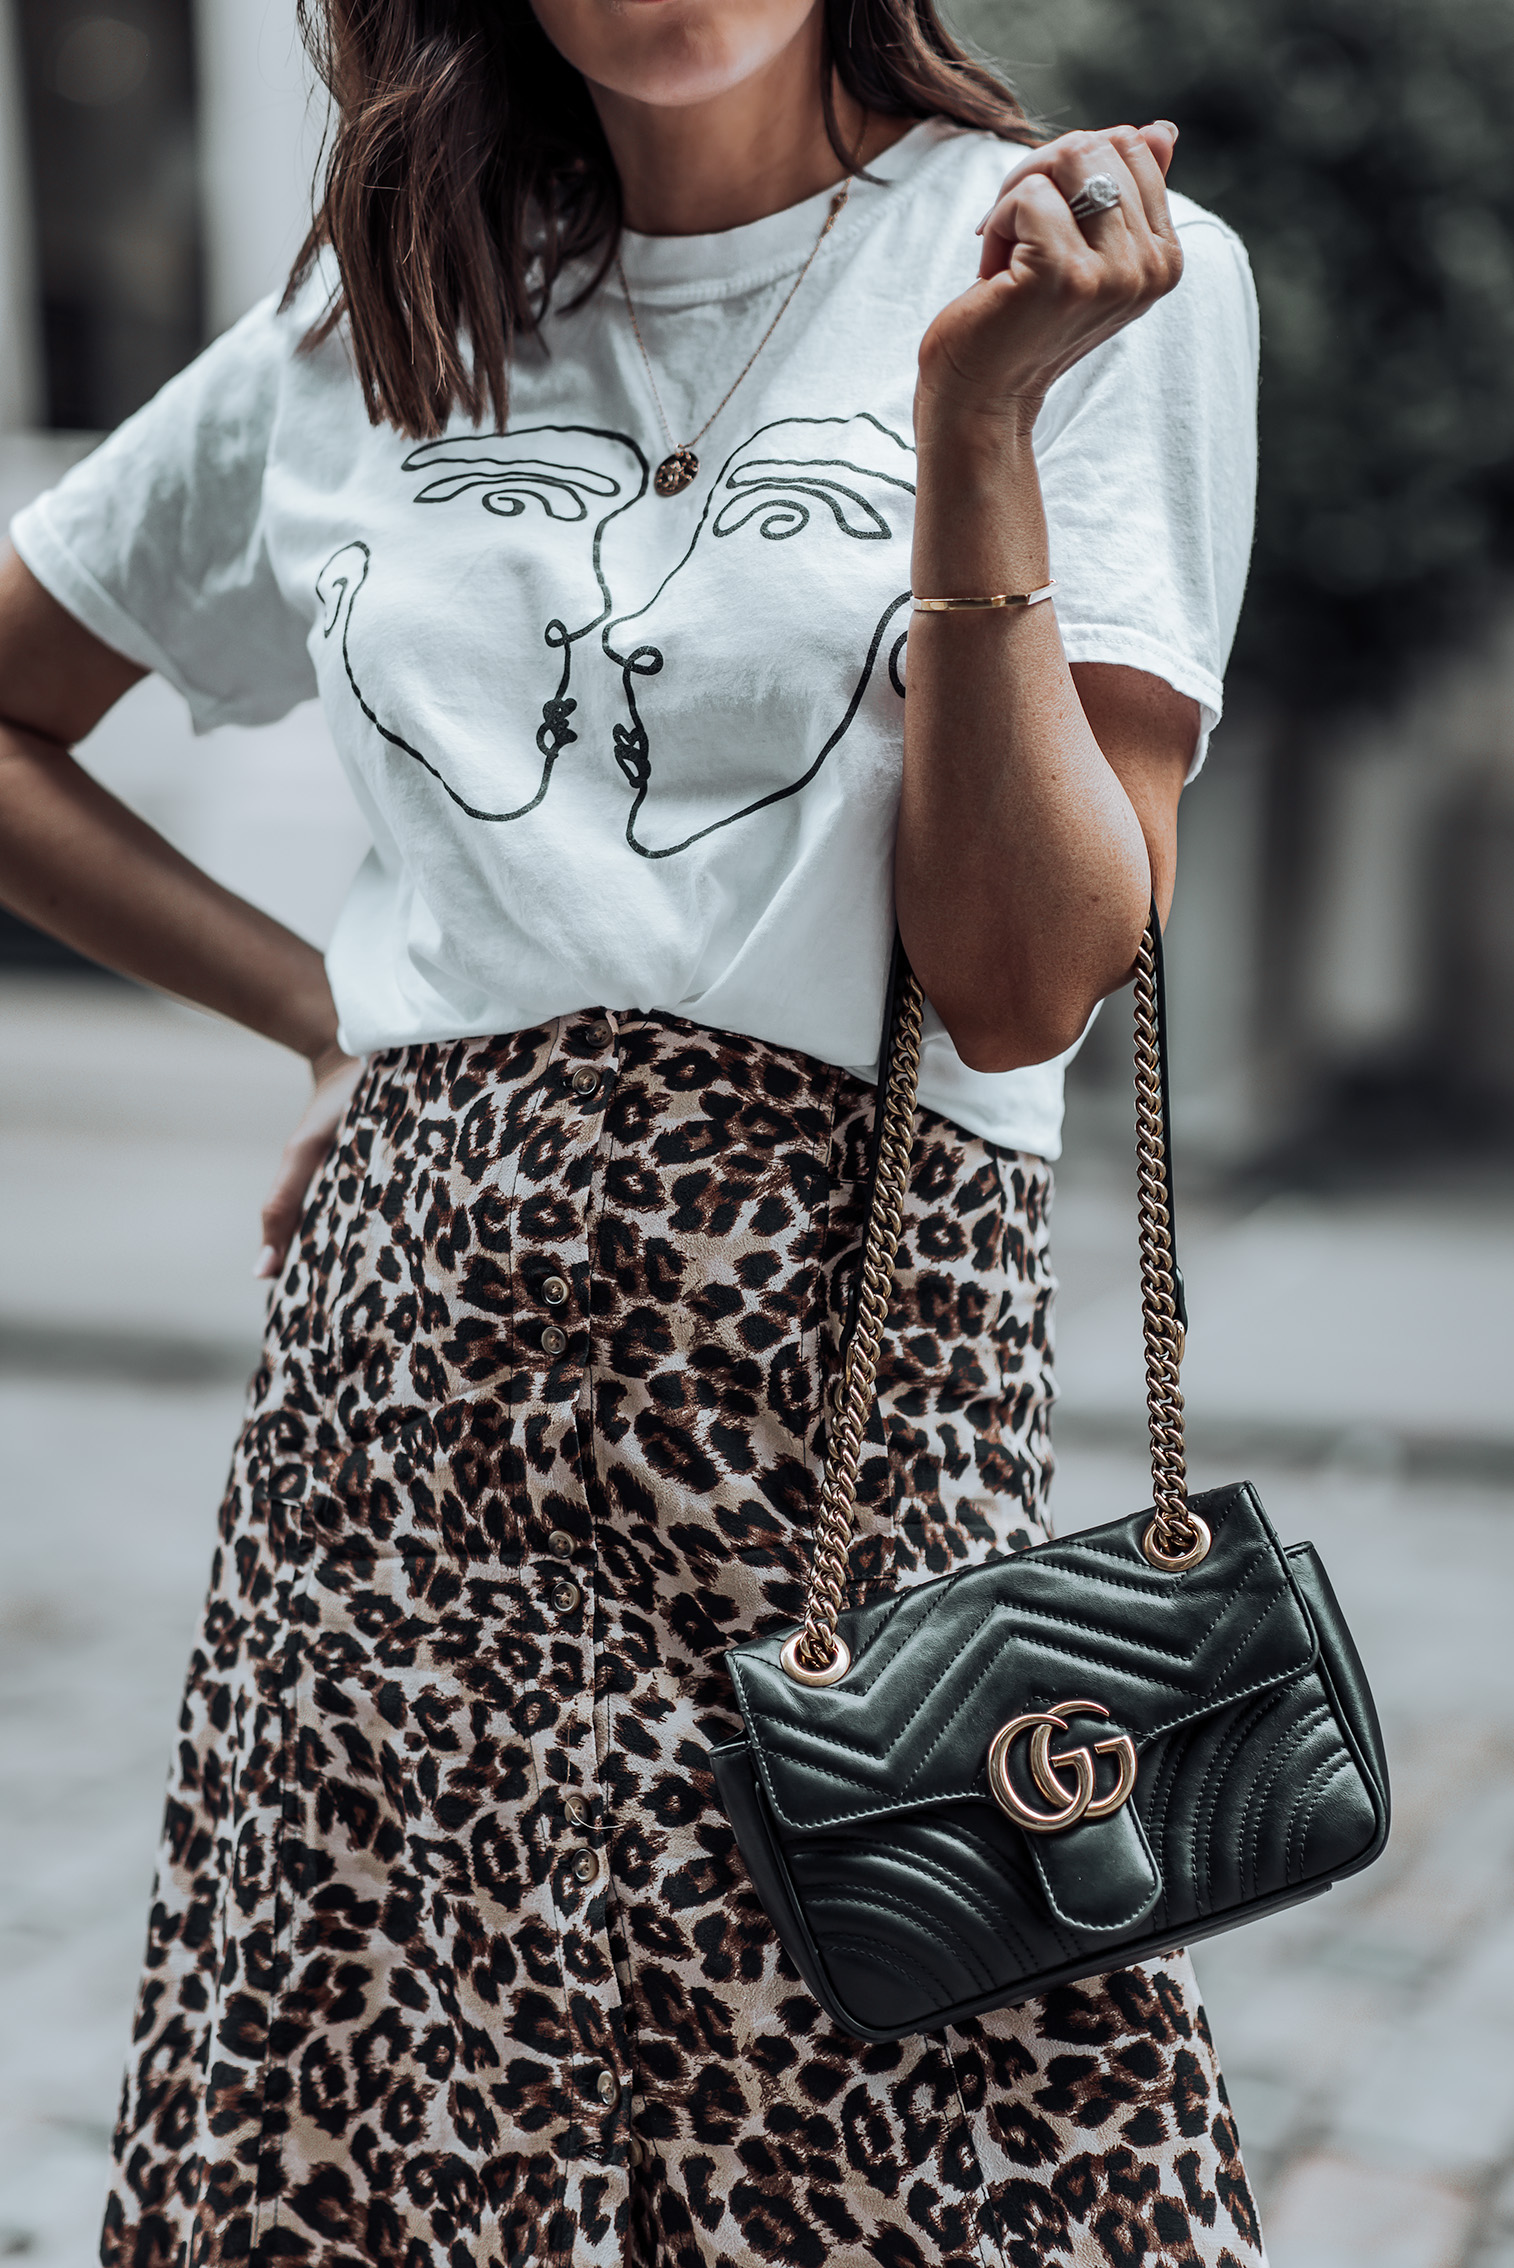 Leopard is the new black  Graphic Tee   Urban Outfitters Leopard Skirt   Gucci Bag   Greats Sneakers   #liketkit #leopard #minimalist #sneakeroutfits #streetstyle